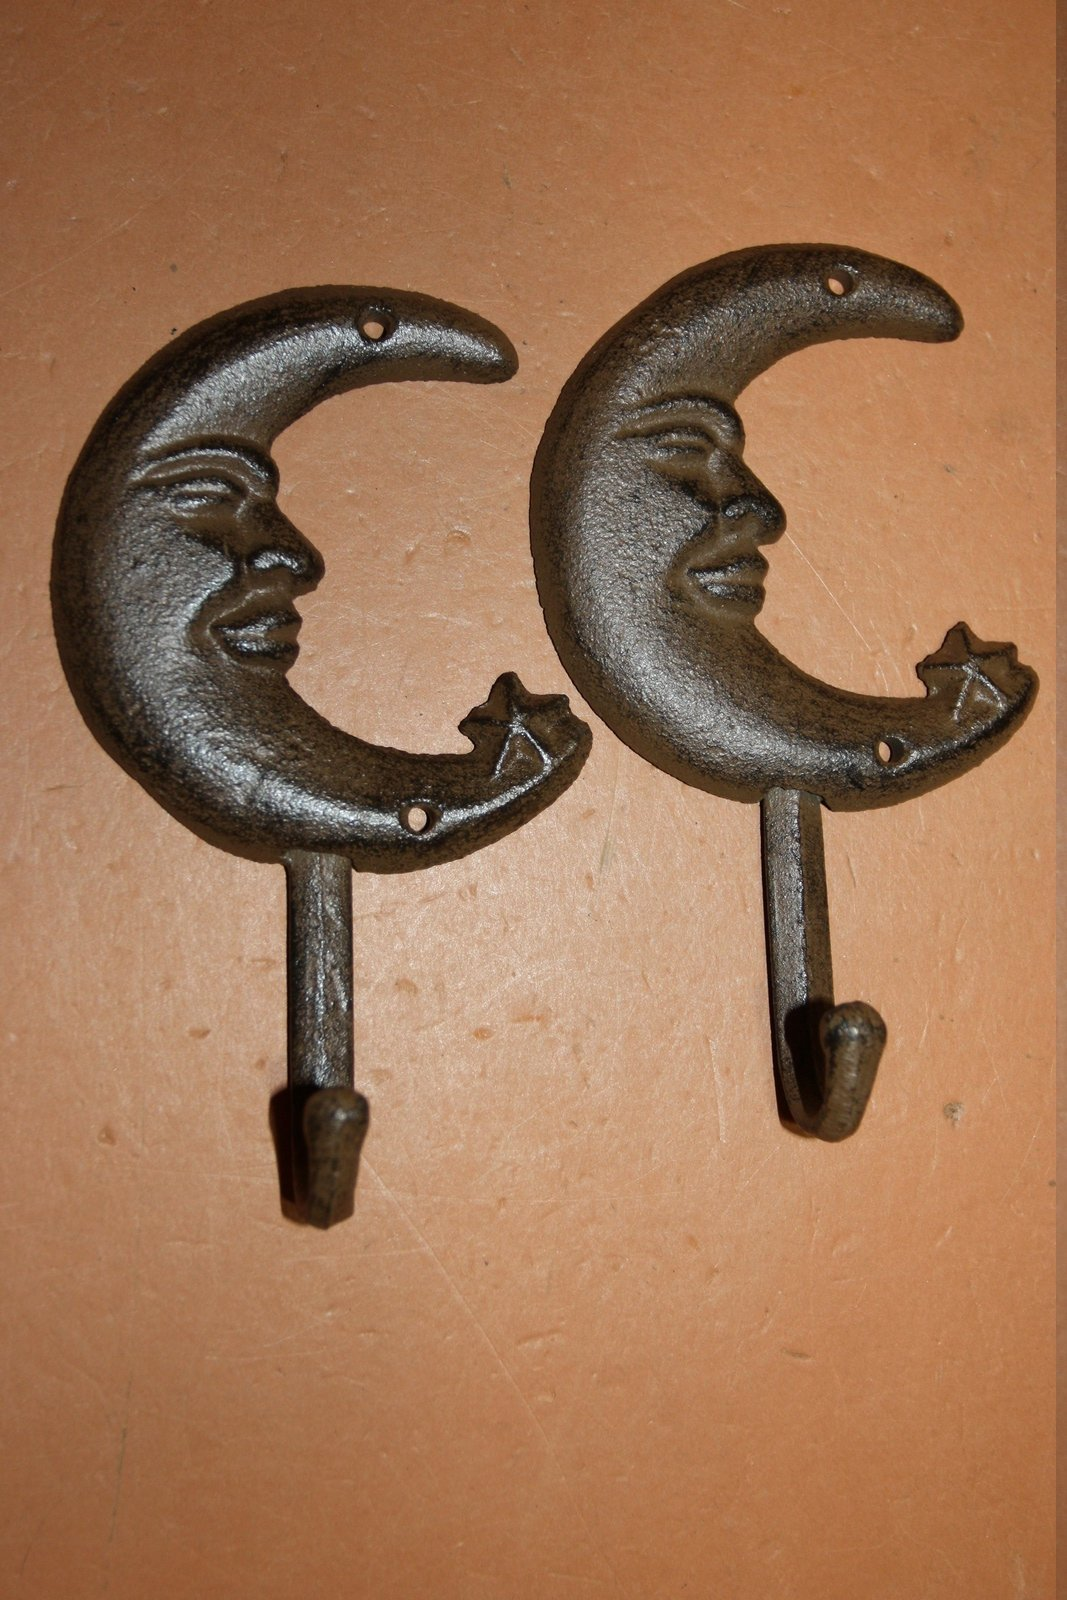 2) Vintage Look Man In The Moon Bathroom Decor Cast Iron Towel Hooks 6 1/2 inch high Volume Priced ~ Sleepy Time ~ H-16